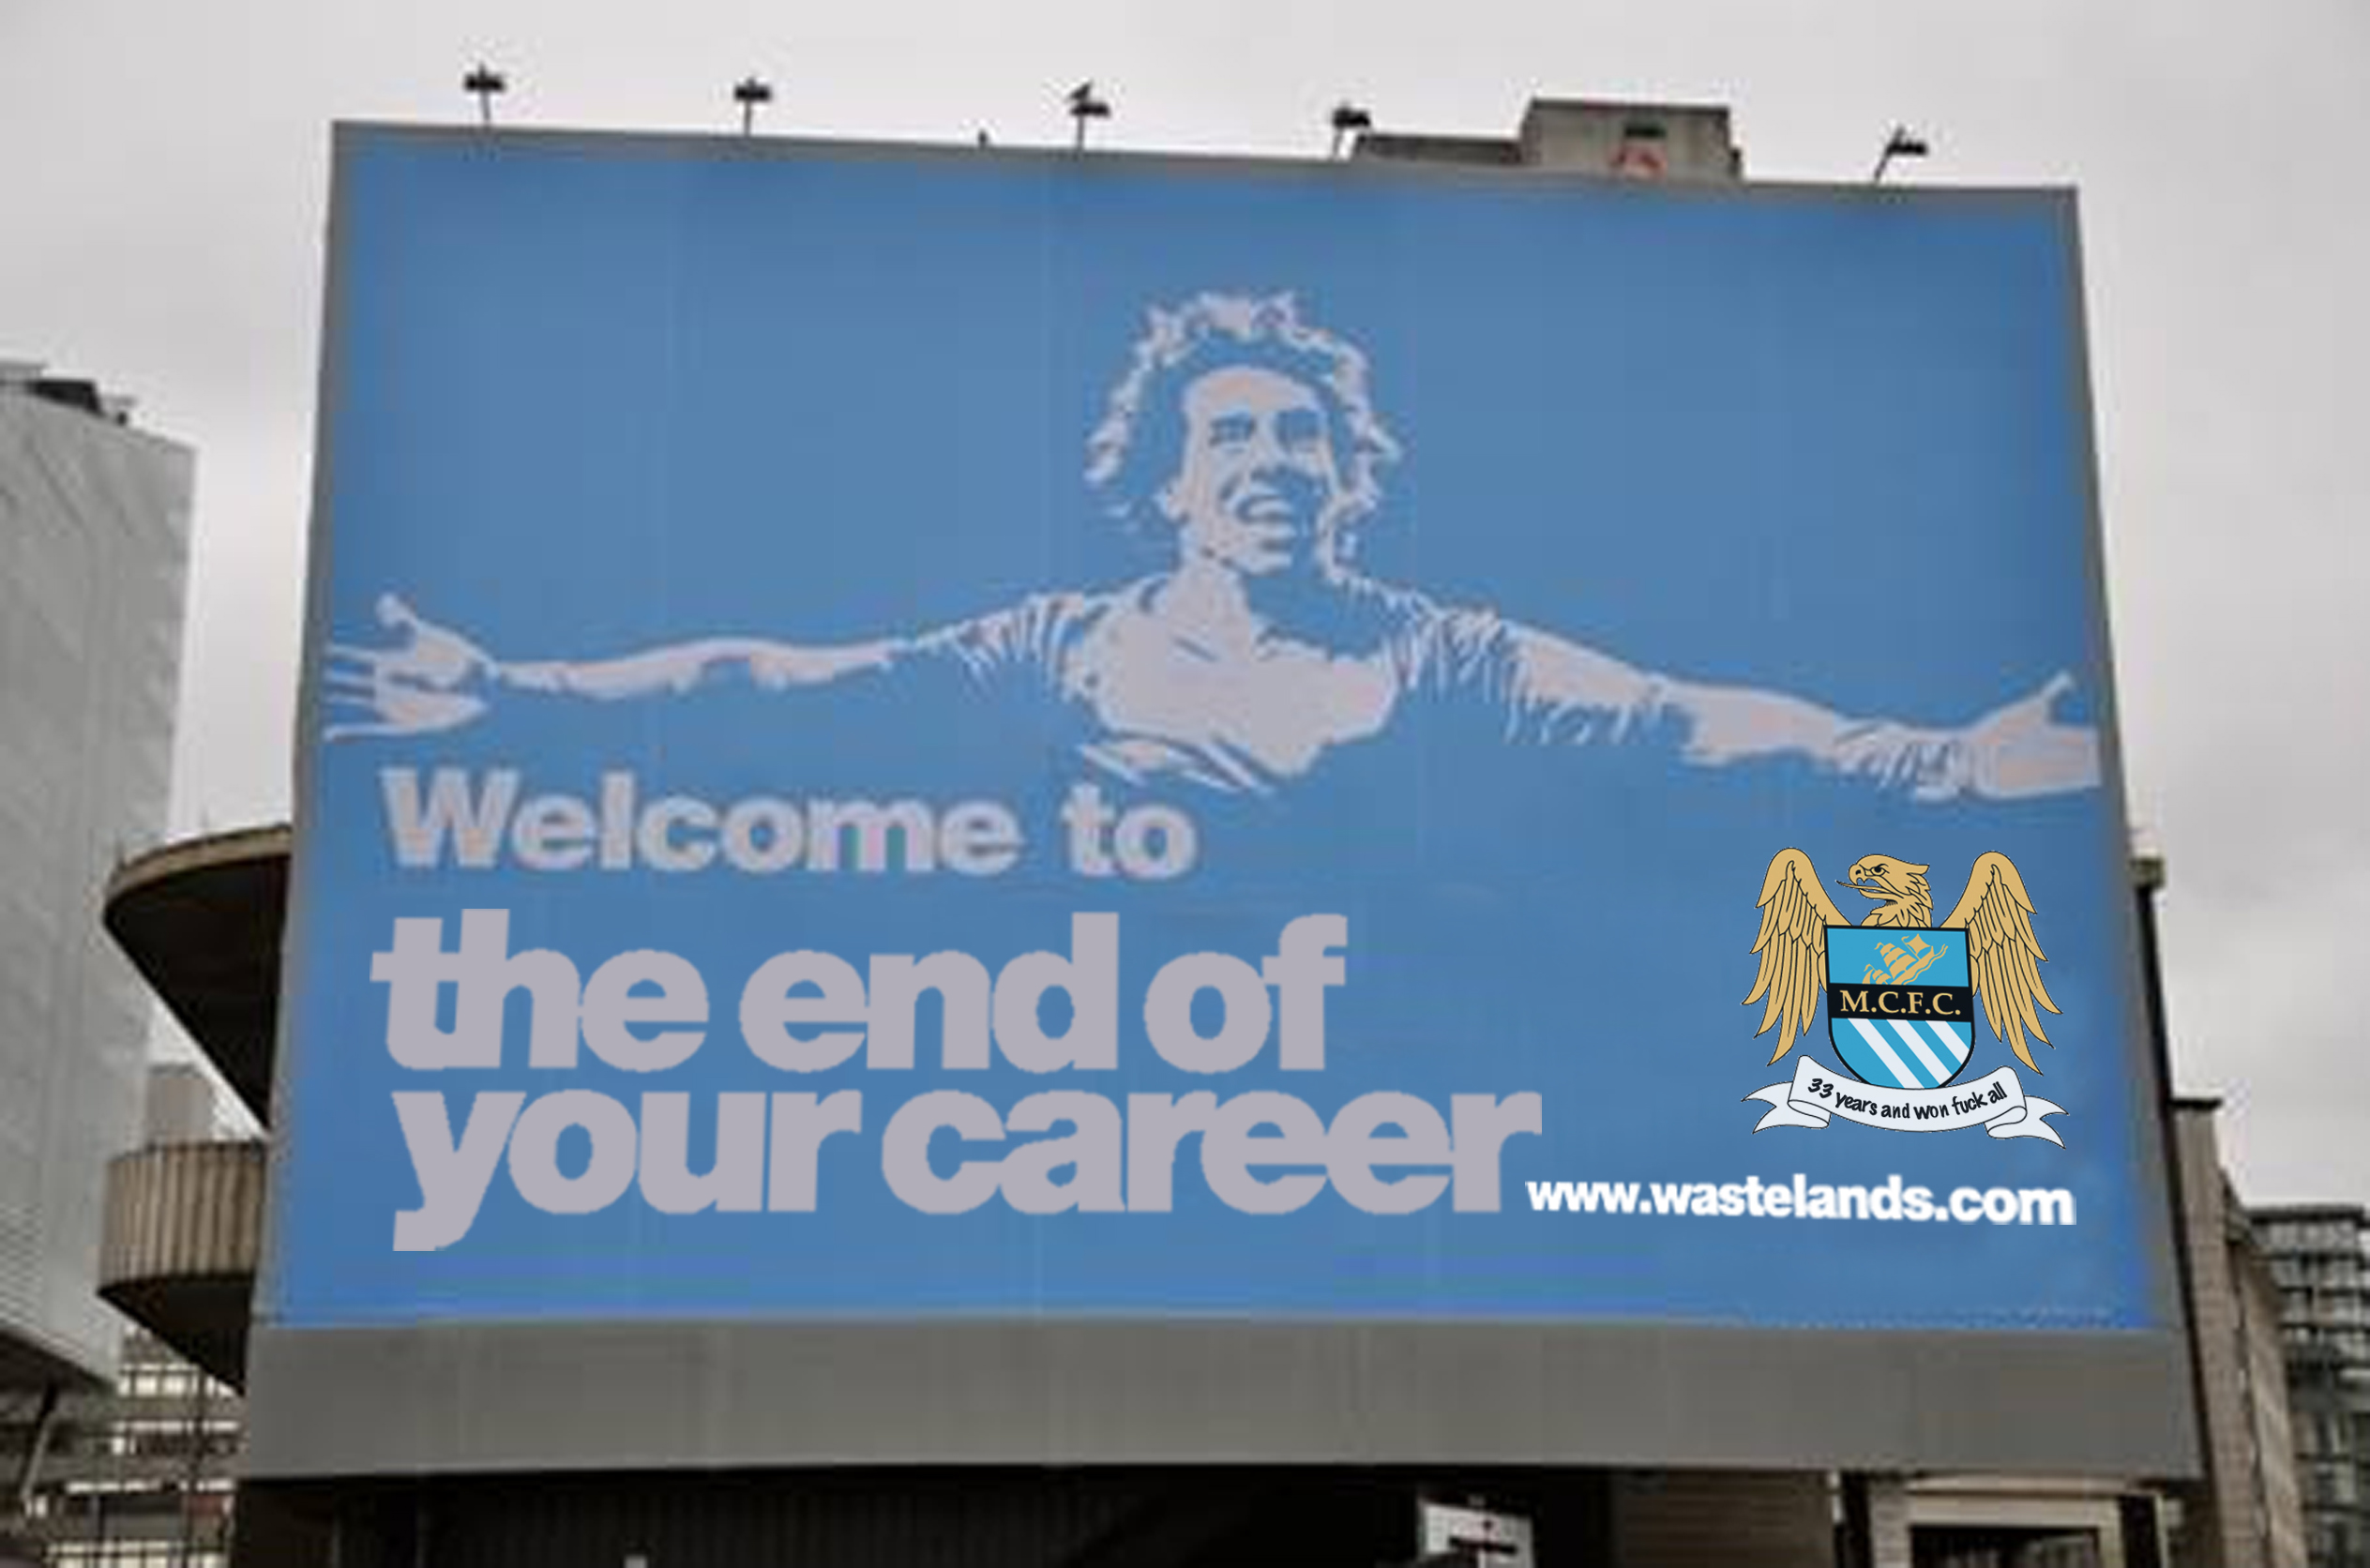 City's Carlos Poster – The Reality